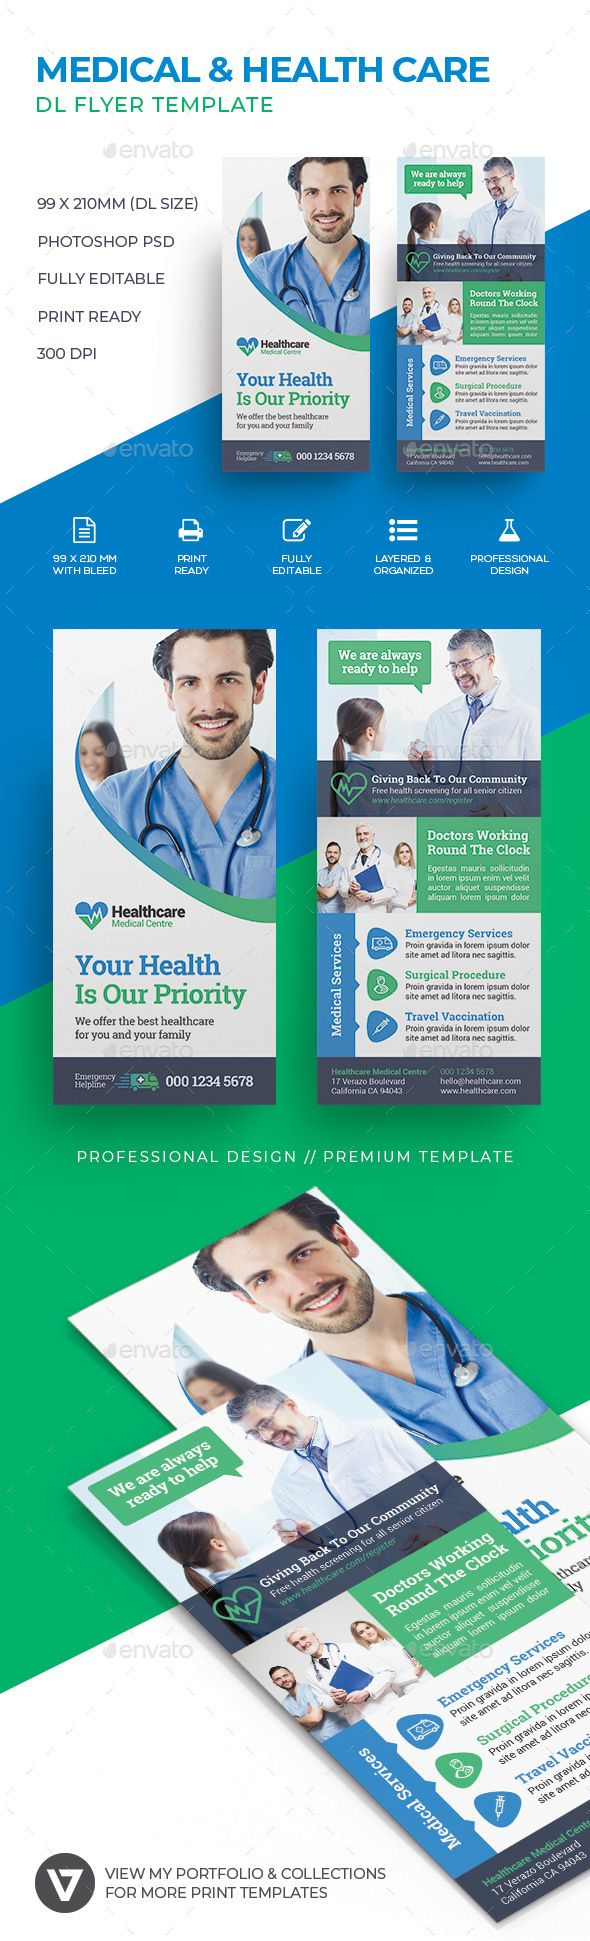 Healthcare-Advertising-Medical-DL-Flyer-Corporate-company-business Healthcare Advertising : #Medical #DL #Flyer #Corporate #company #business